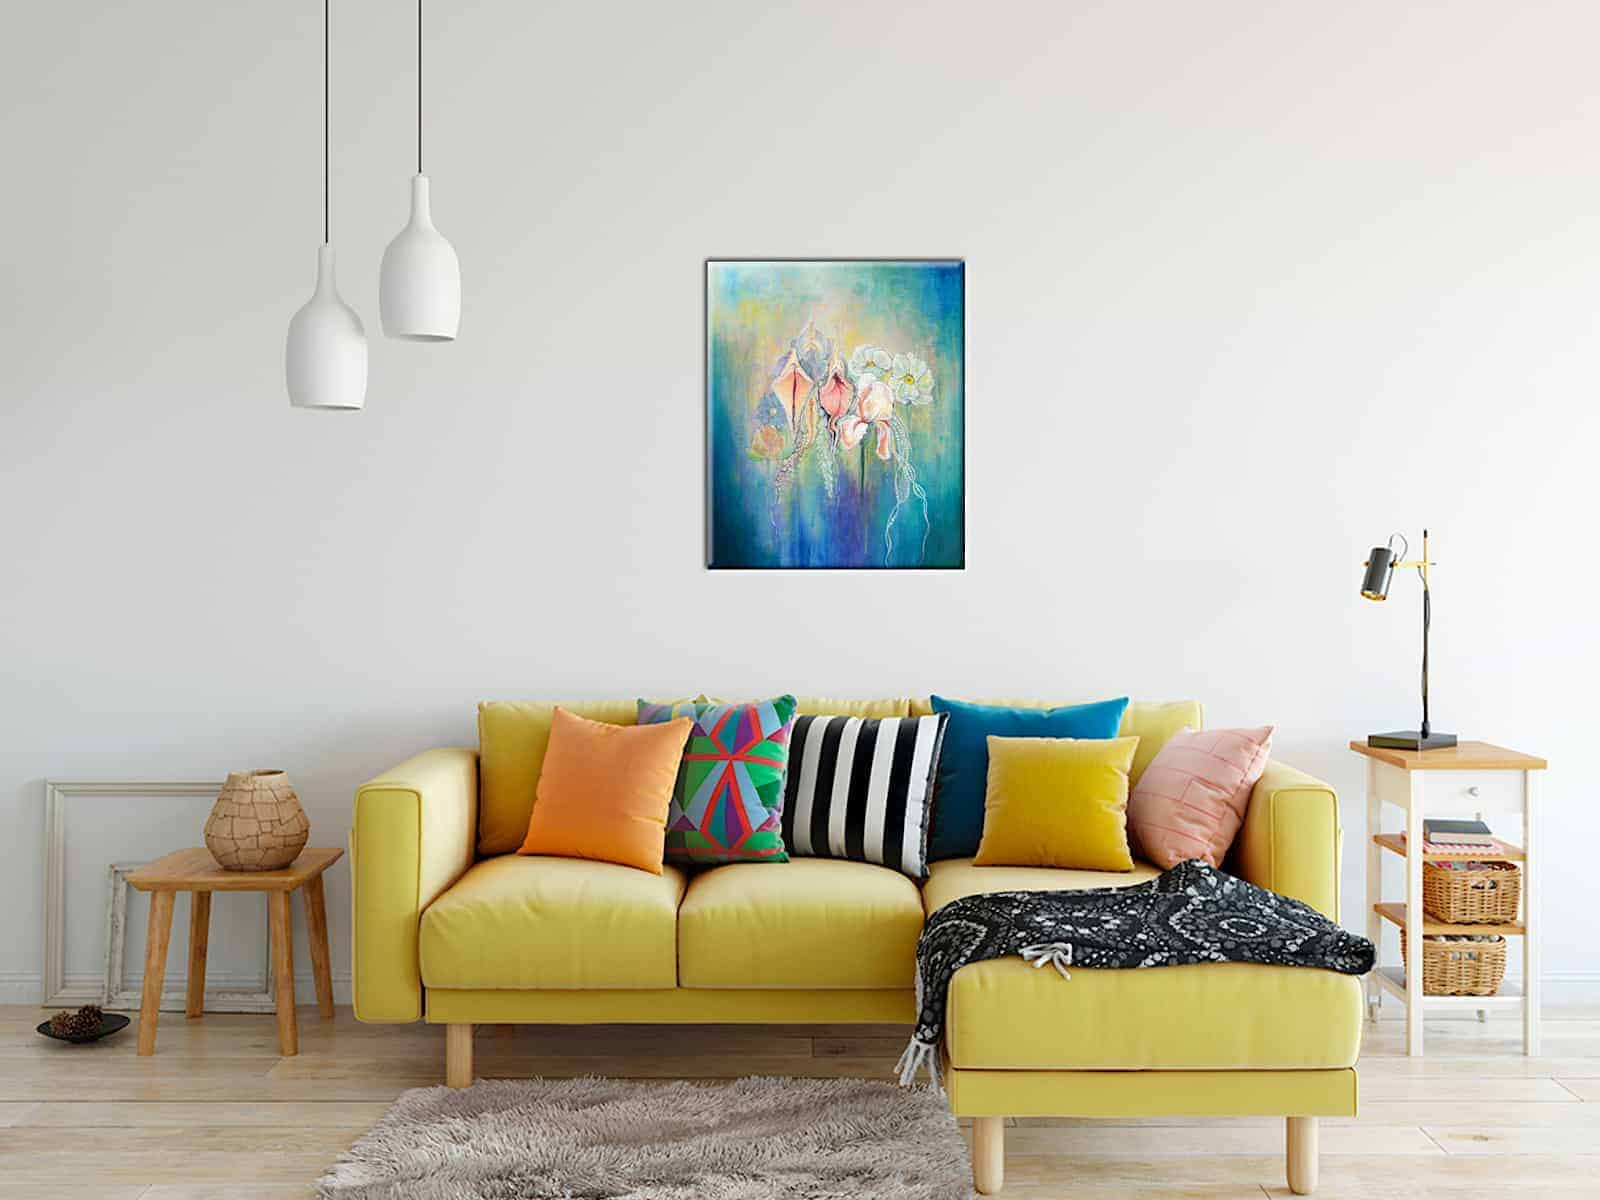 Mock up picture of yoni's in bloom on a wall above a yellow sofa